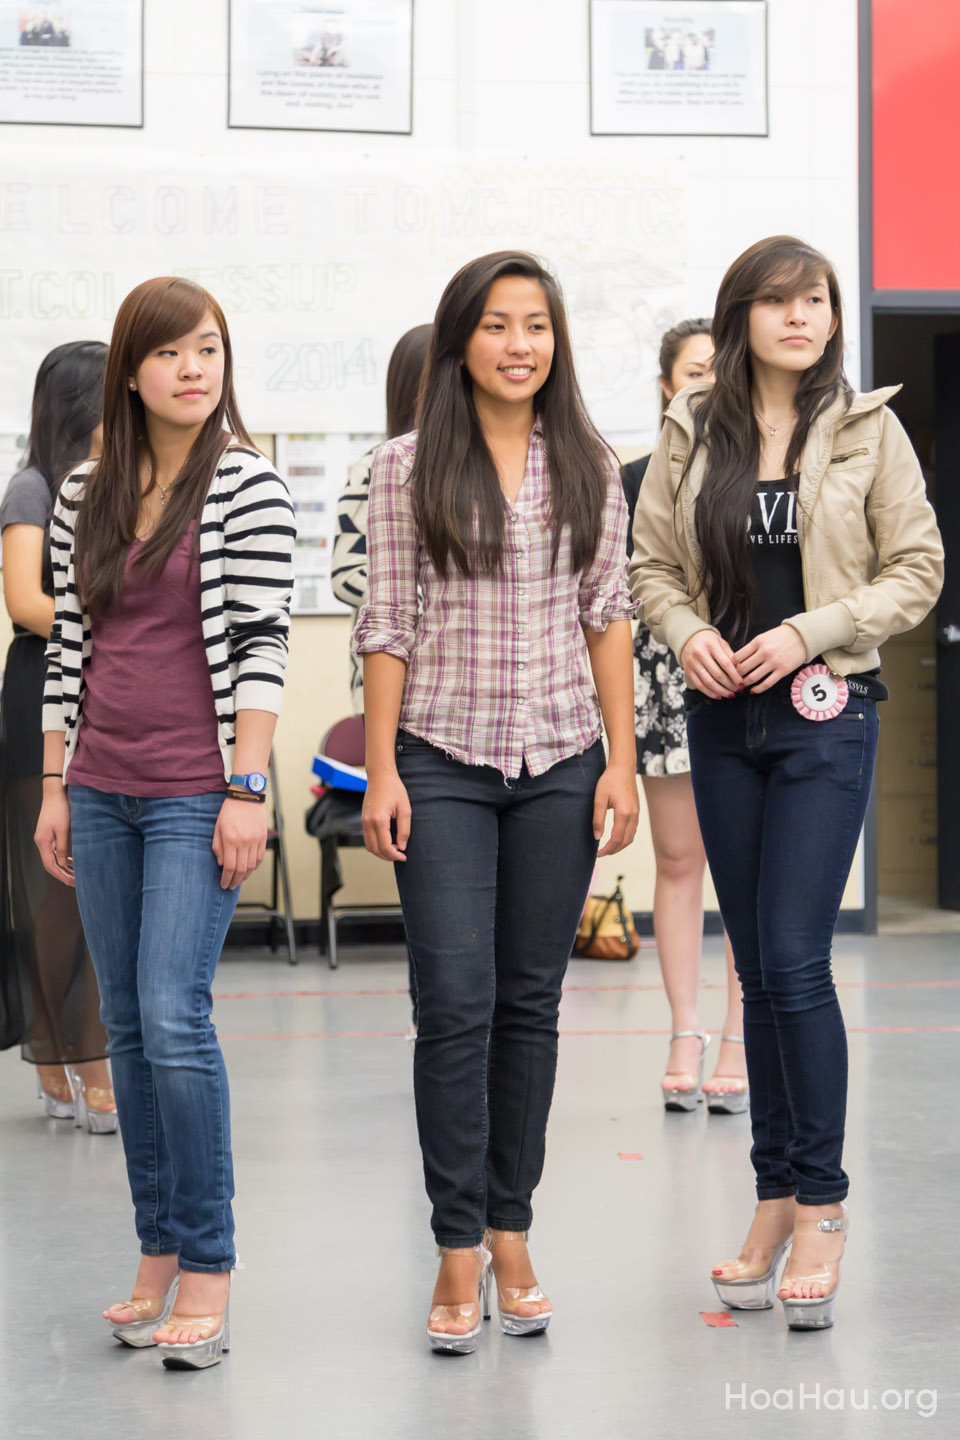 Contestant Practice - January 18, 2014 at Mt Pleasant High School - Image 126